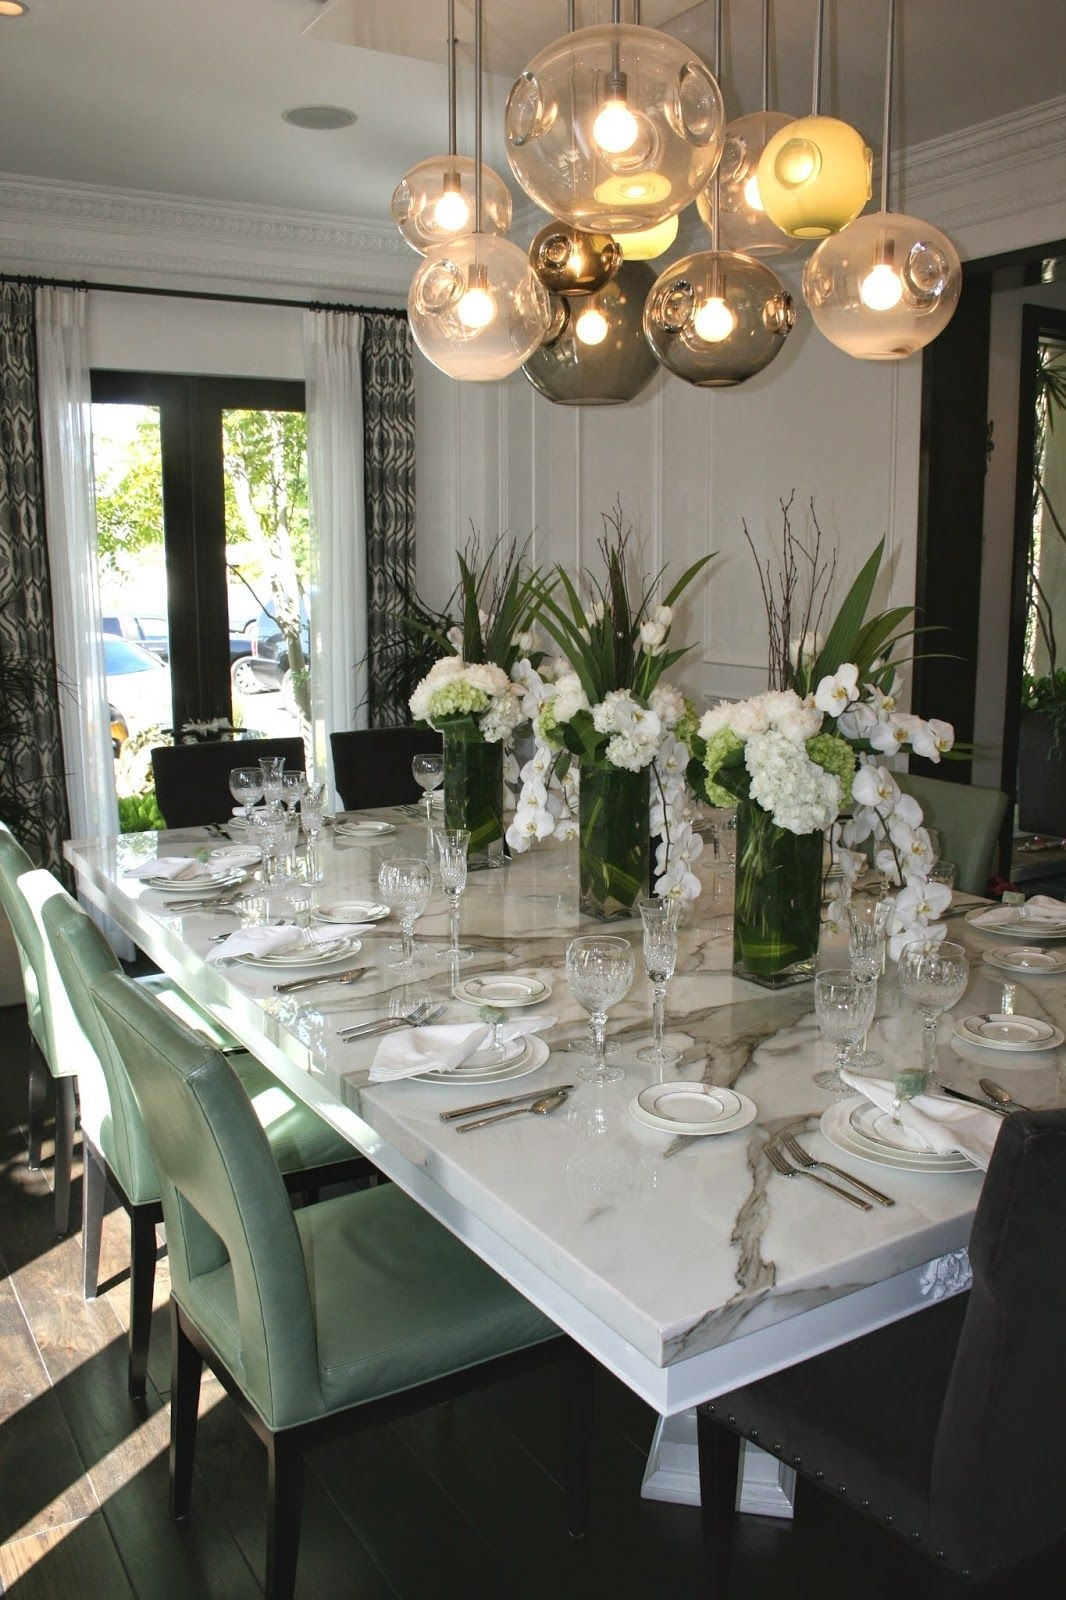 Delightful Dining Room Furniture On Exquisite My Friday Five On Dining Room Furniture